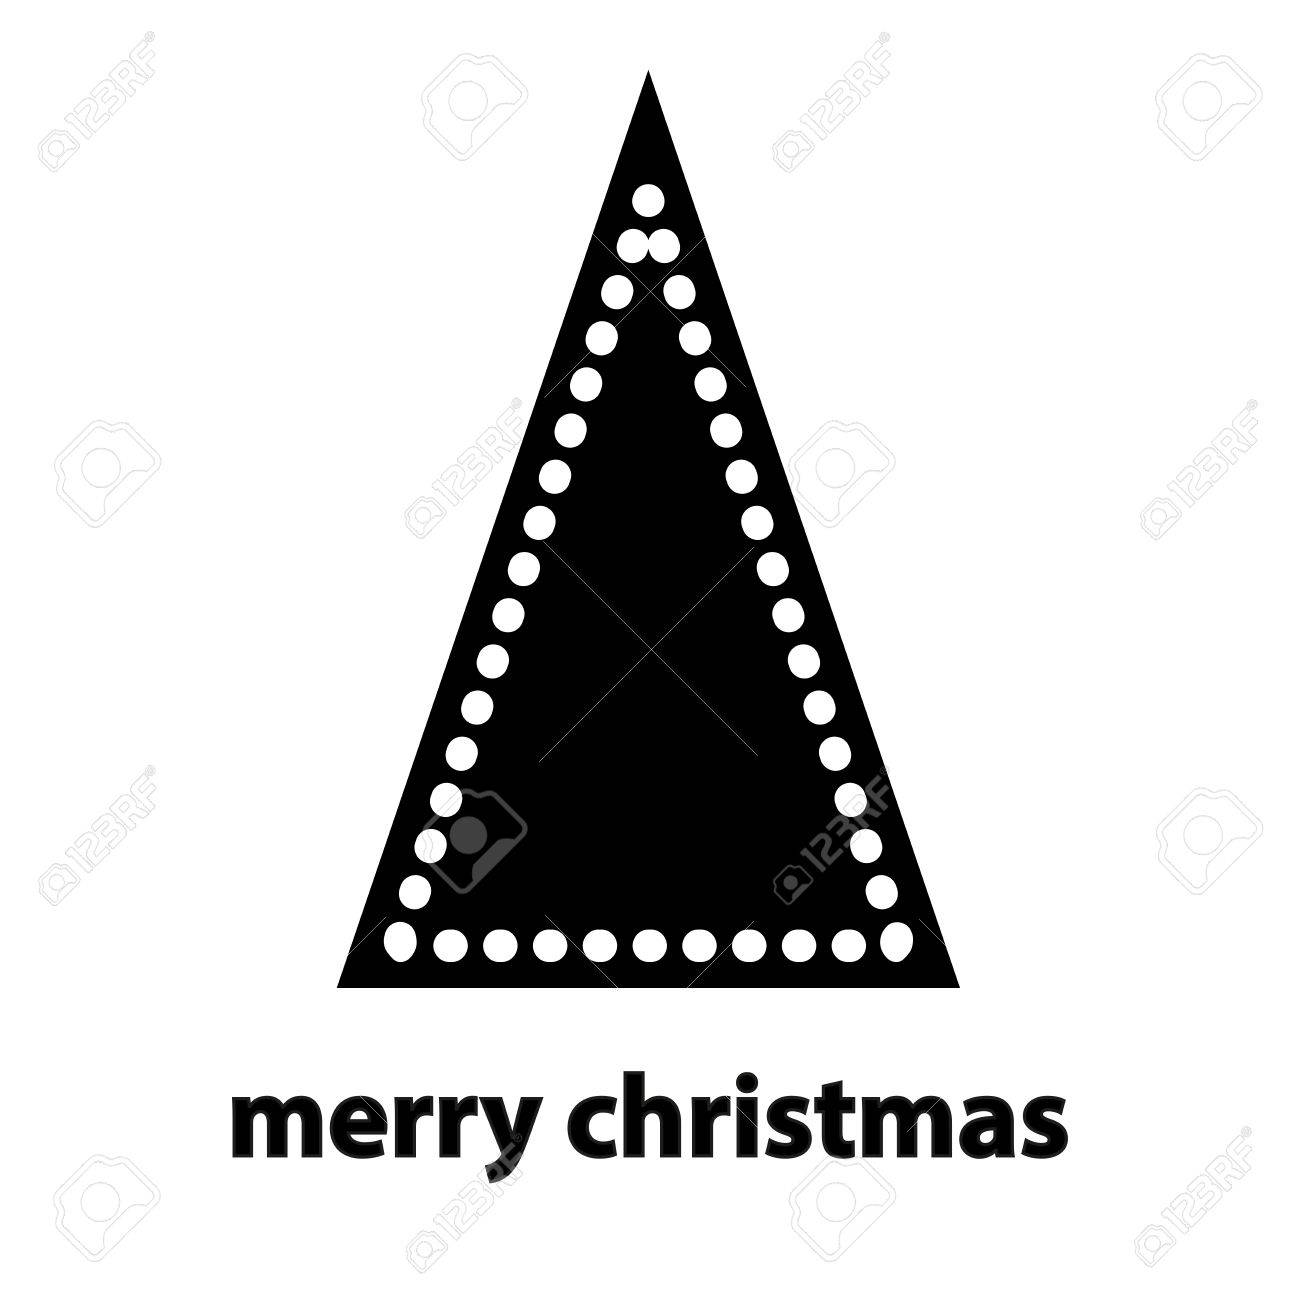 Simple Black Silhouette Of Triangle Christmas Tree With Balls On White Background Stock Vector